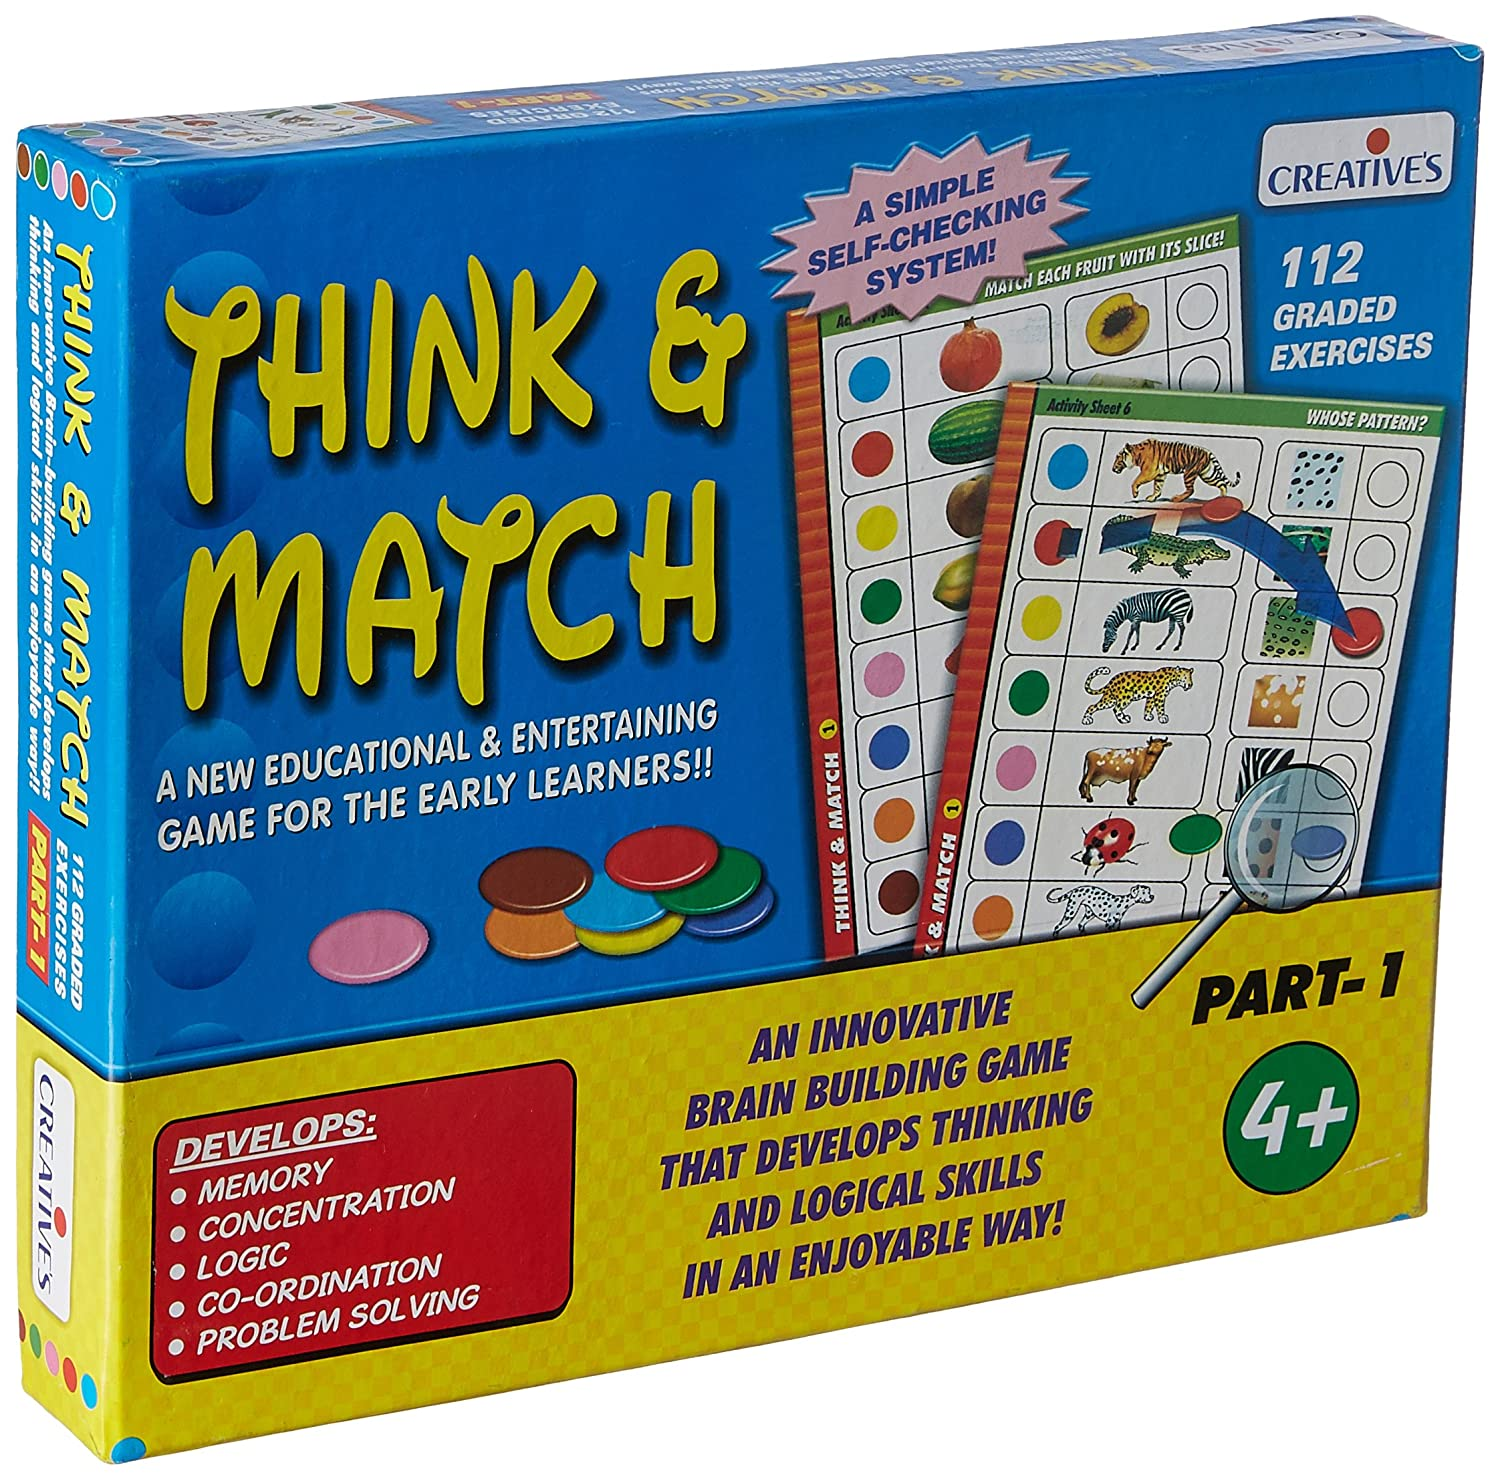 Tiny Souls Think And Match - 1 (Multi-Color) Will Improving Memory His/Her Memory,concentration,Logic,Coordination,Problem Solving